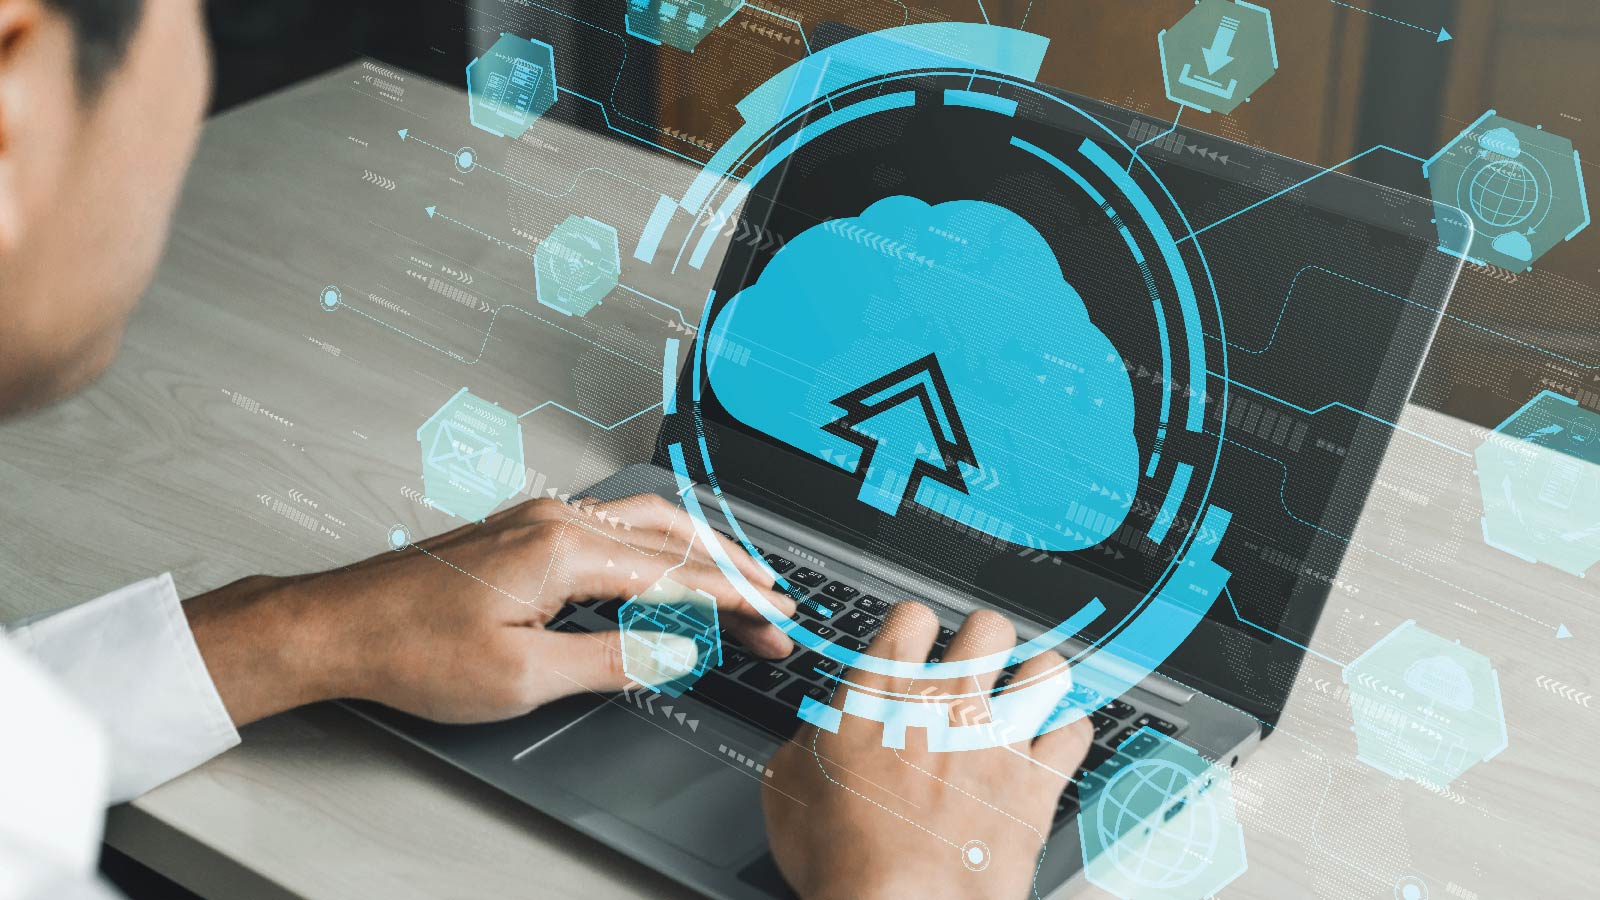 Cloud Services in 2021 to Accelerate – Enterprises Are Increasingly Moving To the Cloud